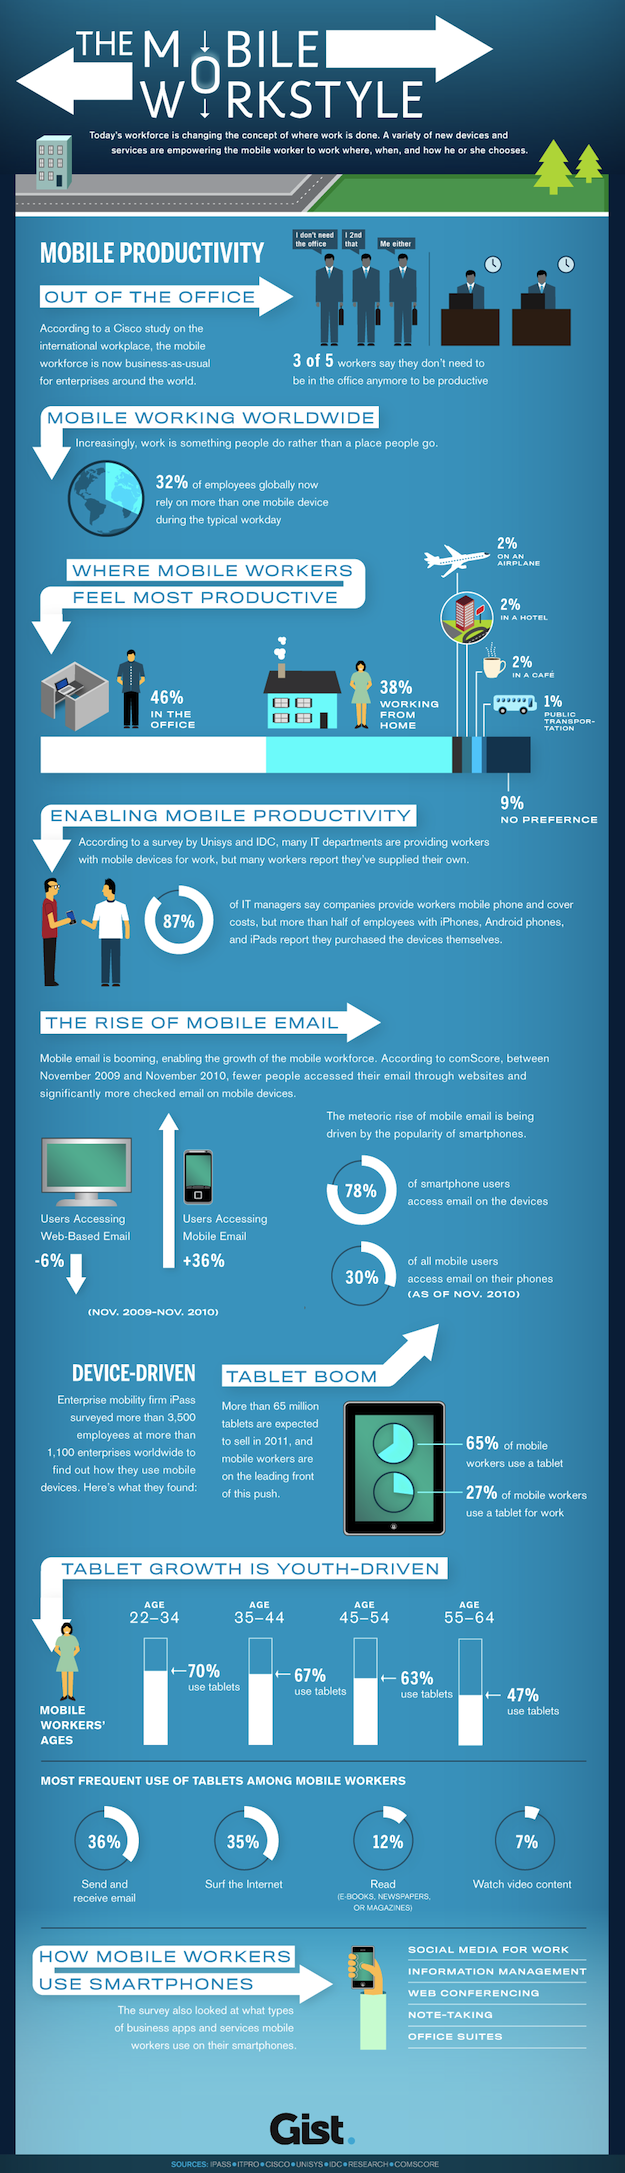 Mobile workforce infographic - Gist